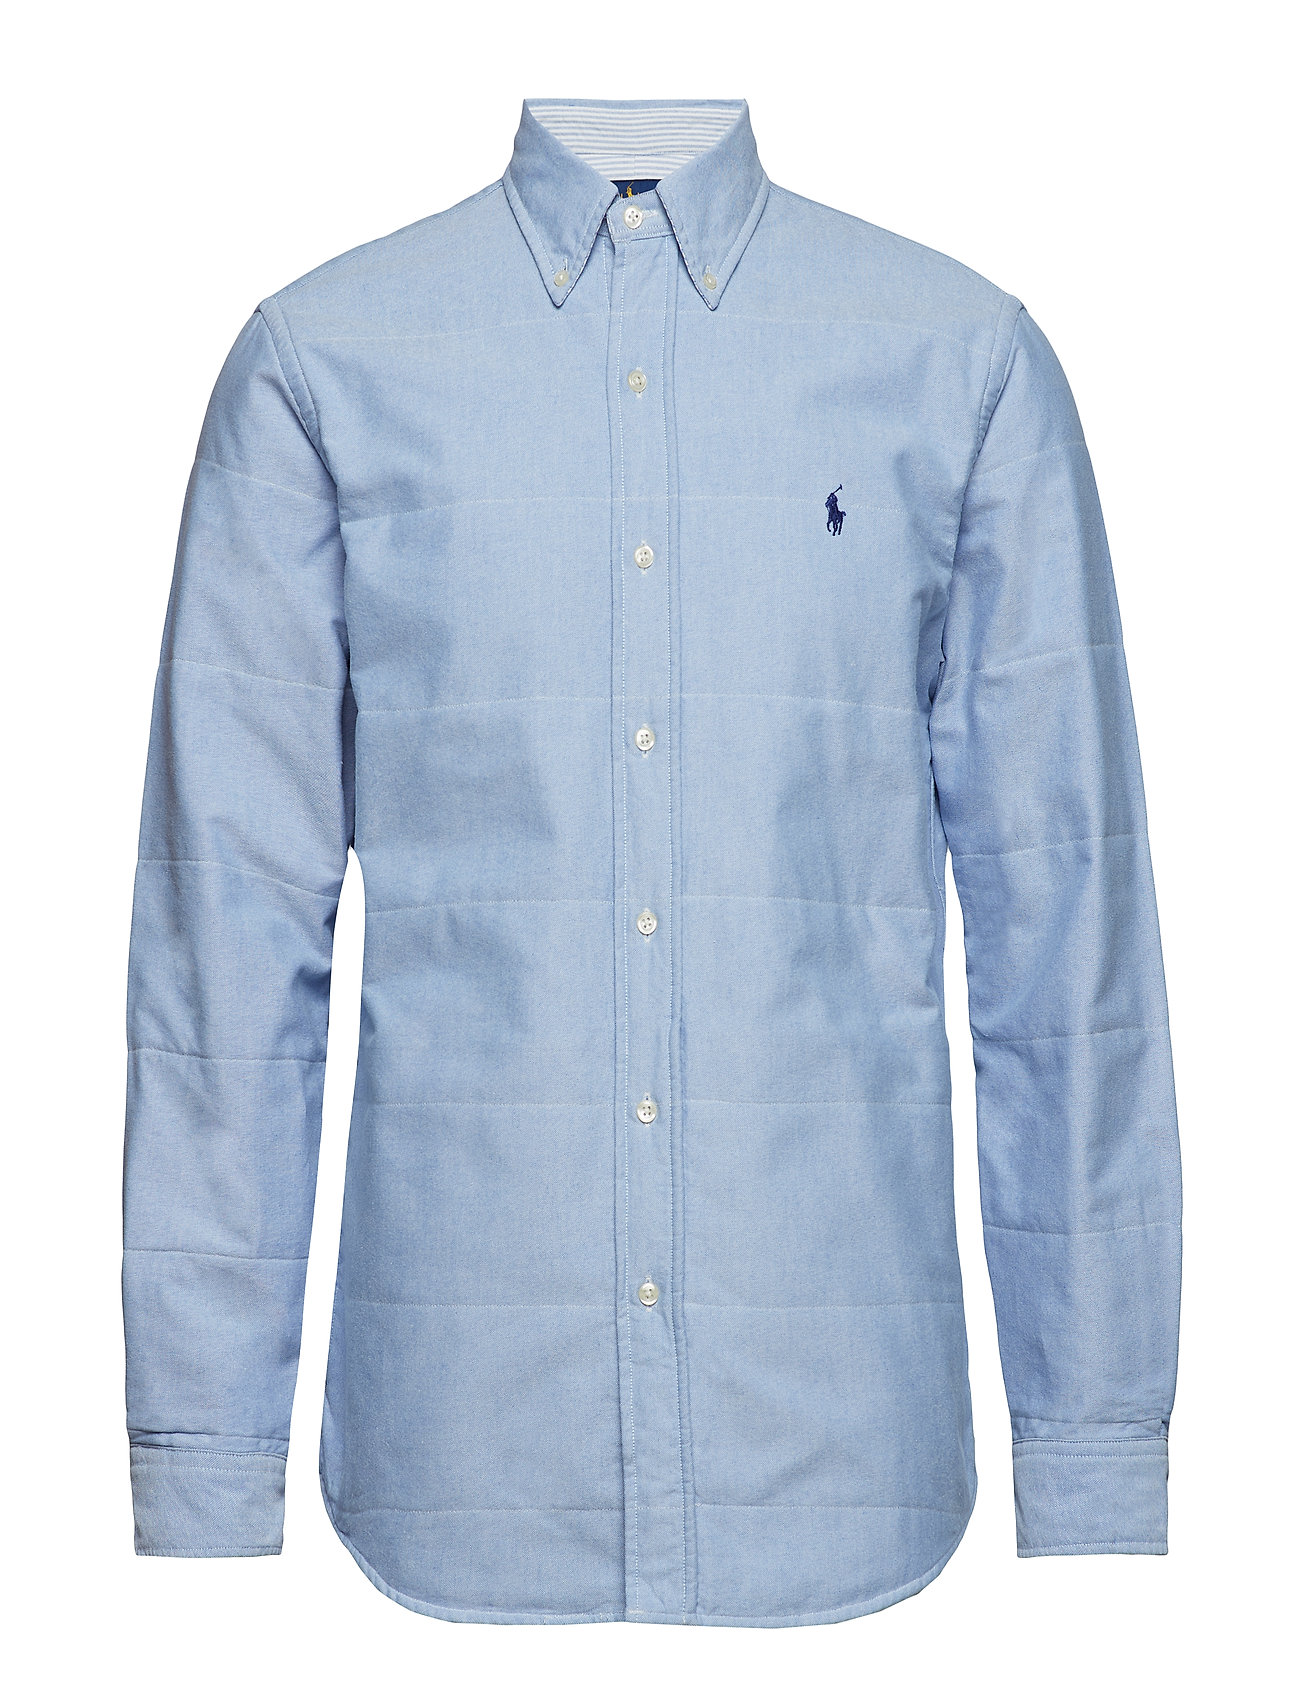 Polo Ralph Lauren Quilted Oxford Shirt Jacket